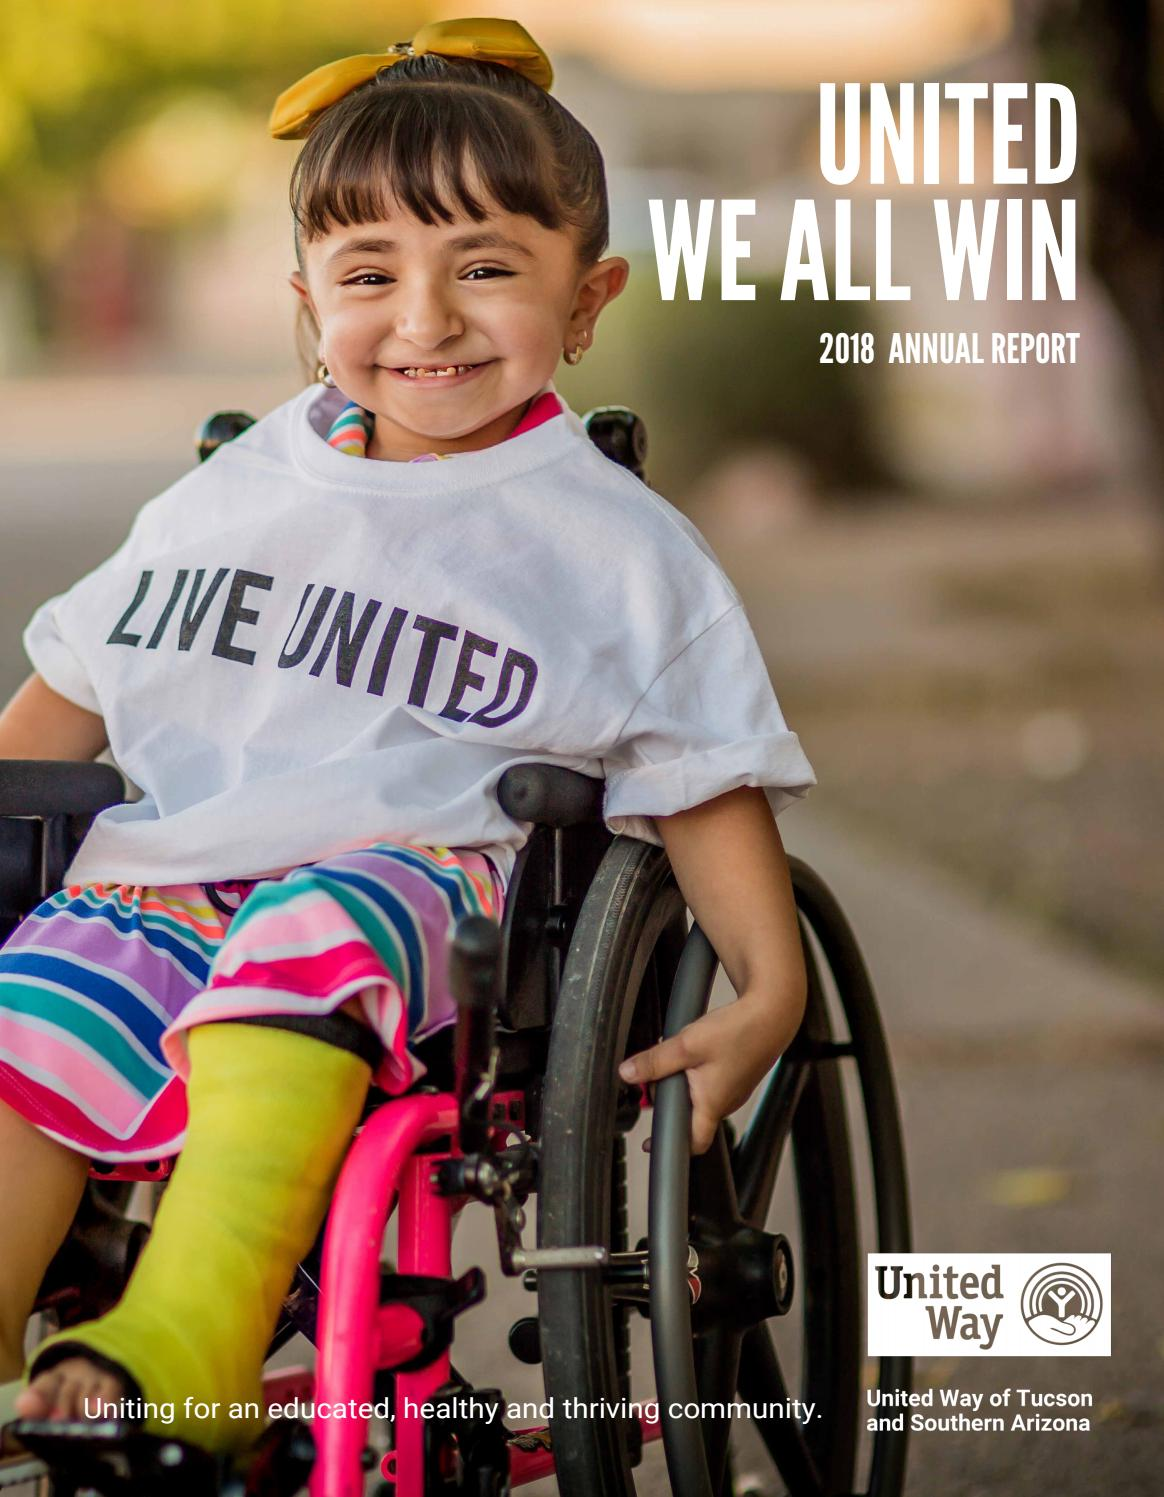 2018 Annual Report: United Way of Tucson and Southern Arizona by